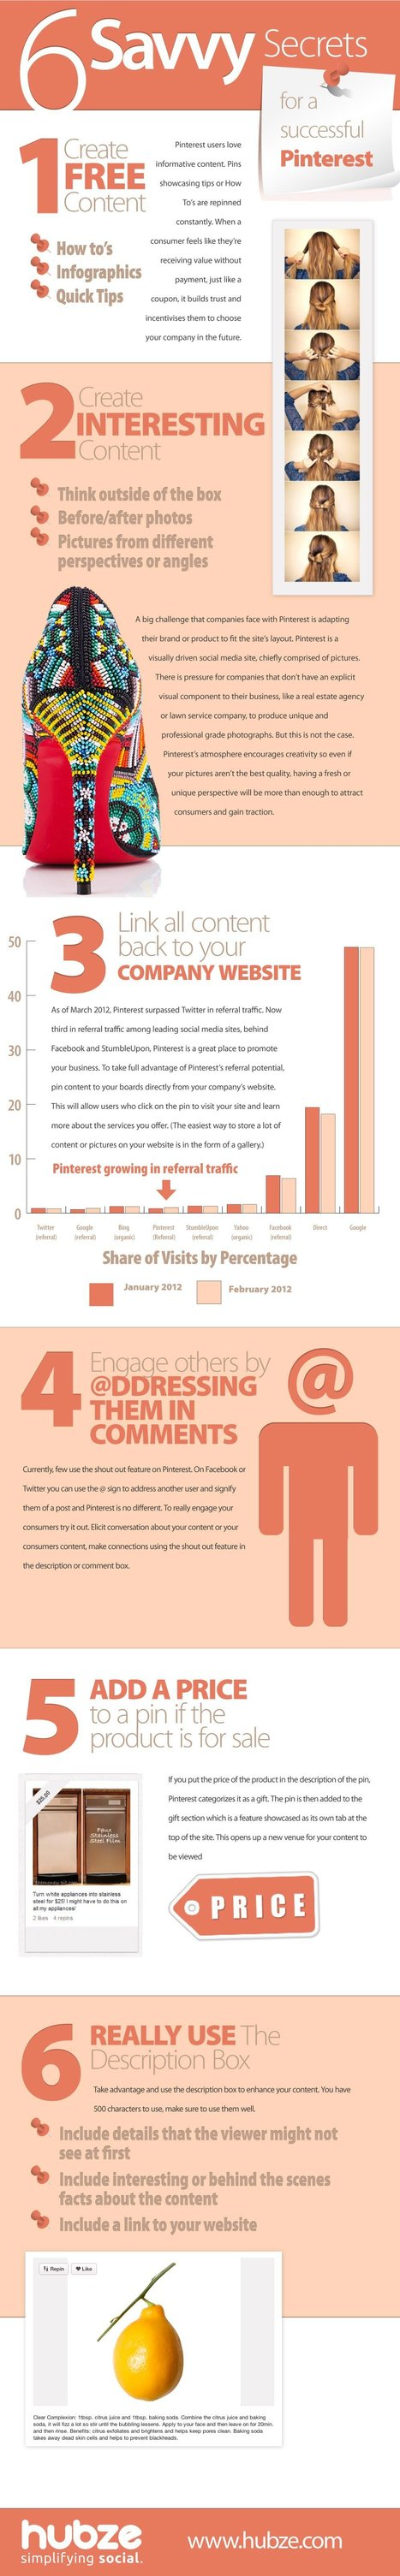 Six Savvy Secrets For A Successful Pinterest [INFOGRAPHIC] | SMB Social Media Monitor | Scoop.it